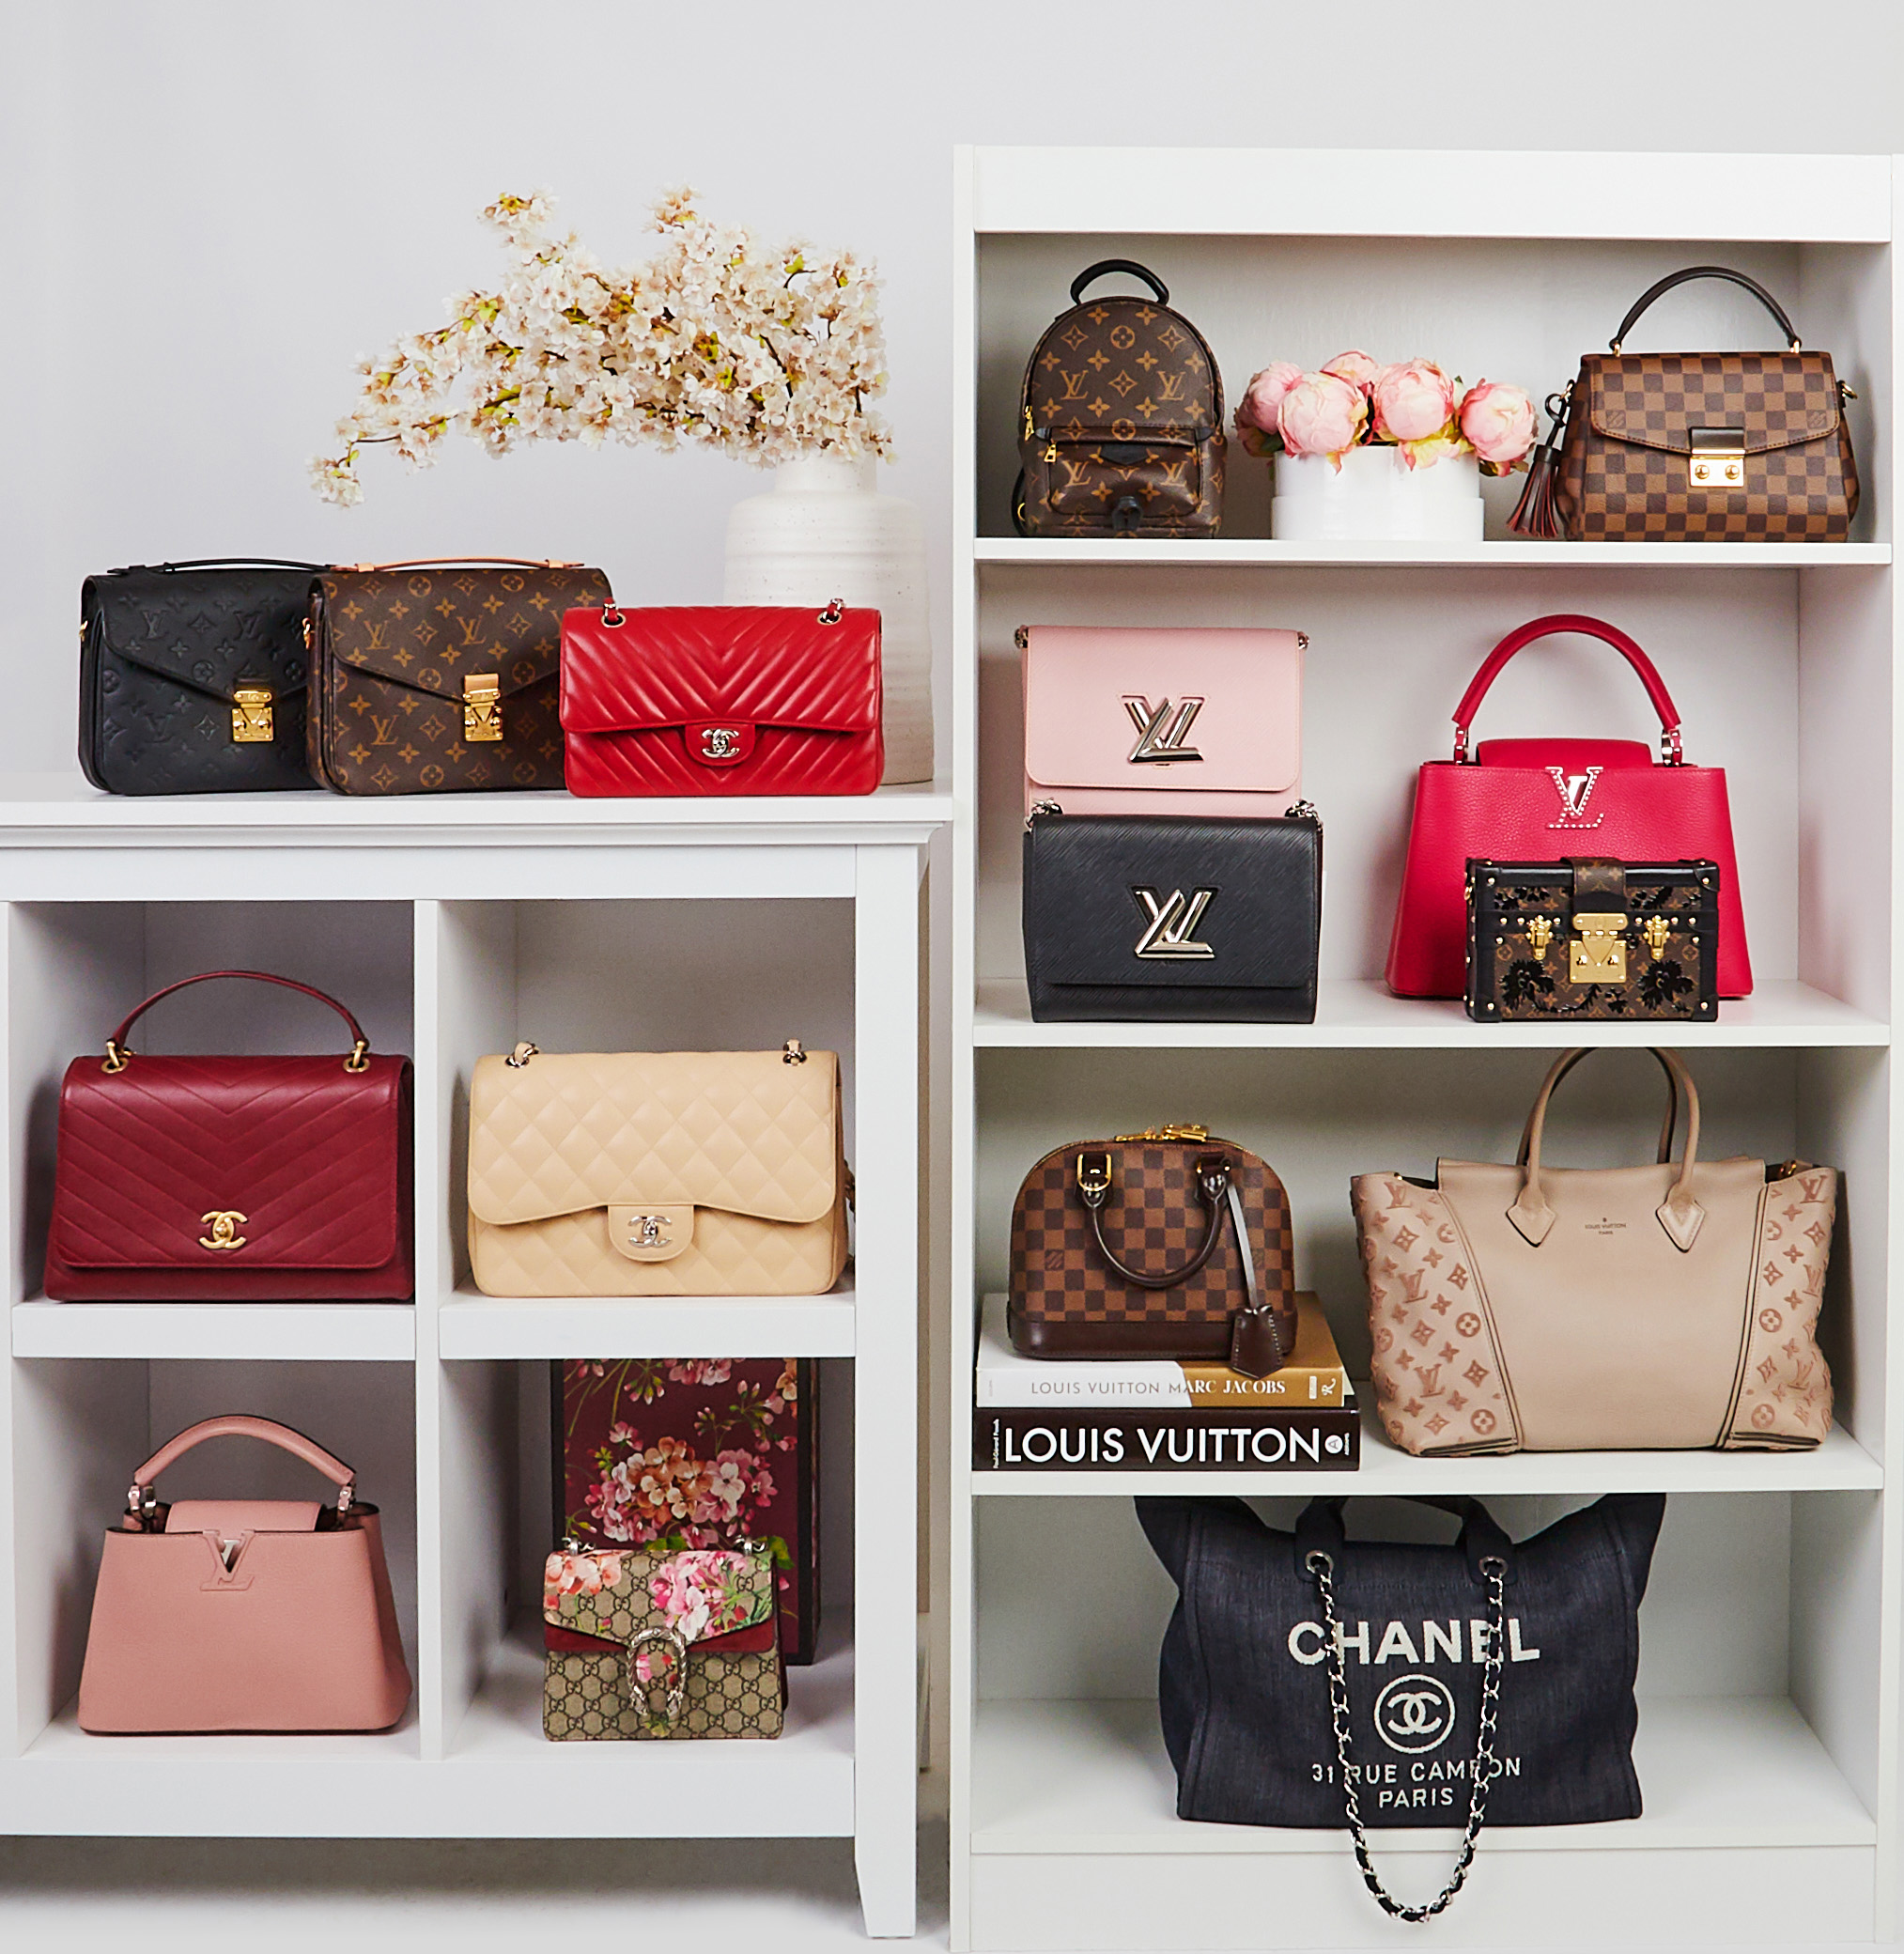 b1a357a51b0 How To Start Your Handbag Collection | Yoogi's Closet Authenticated  Pre-Owned Luxury yoogiscloset.